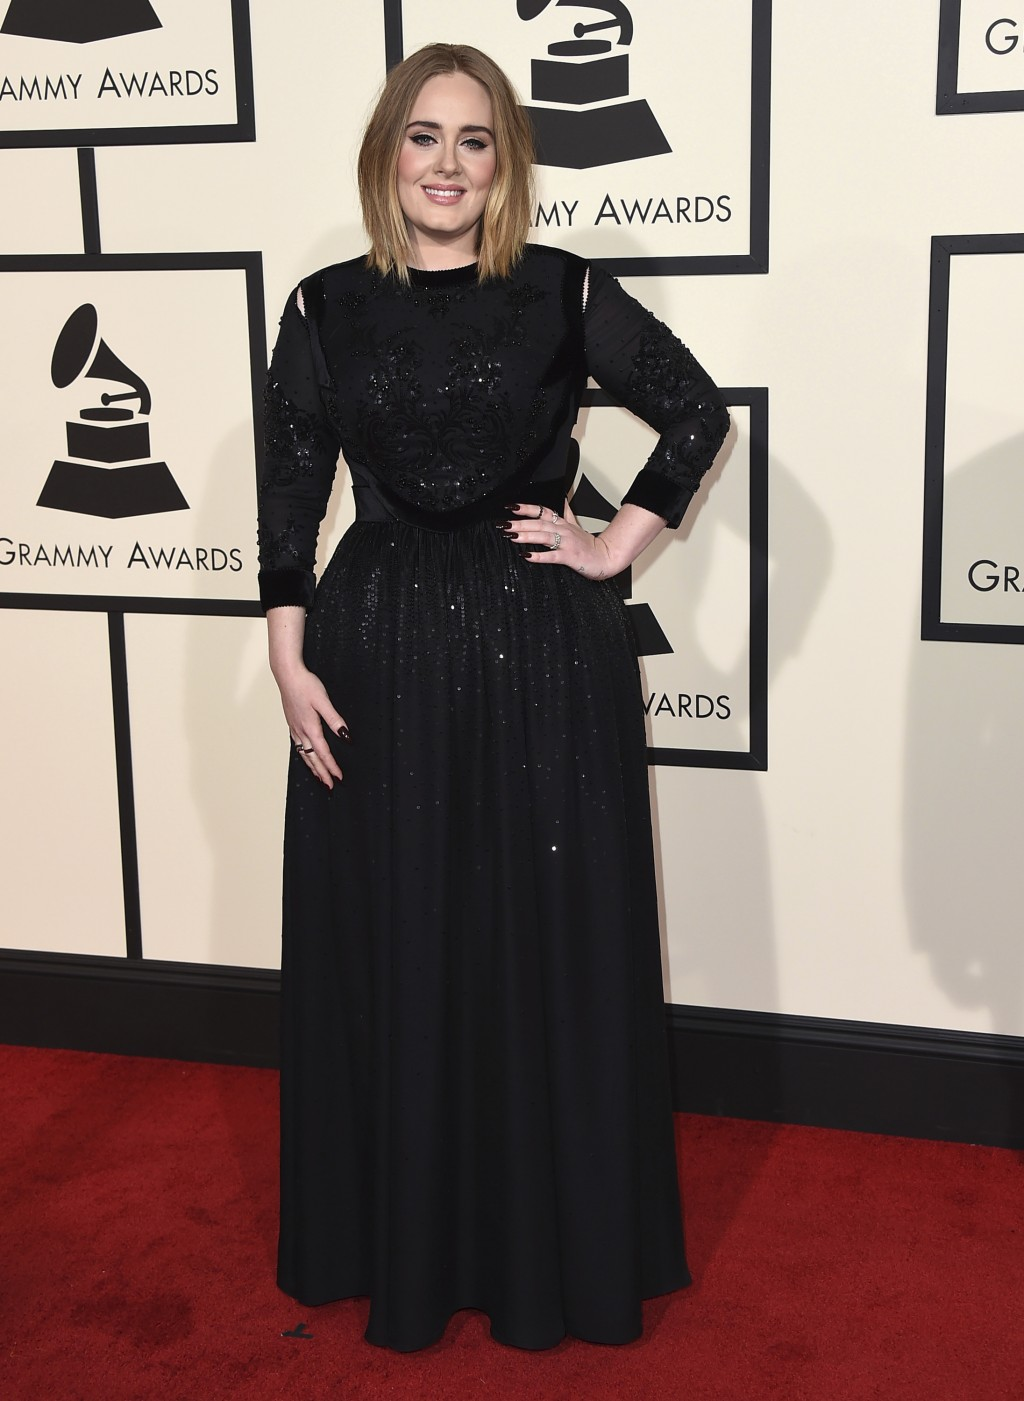 FILE - In this Feb. 15, 2016 file photo, Adele arrives at the 58th annual Grammy Awards in Los Angeles. Adele is among several musicians who are objec...